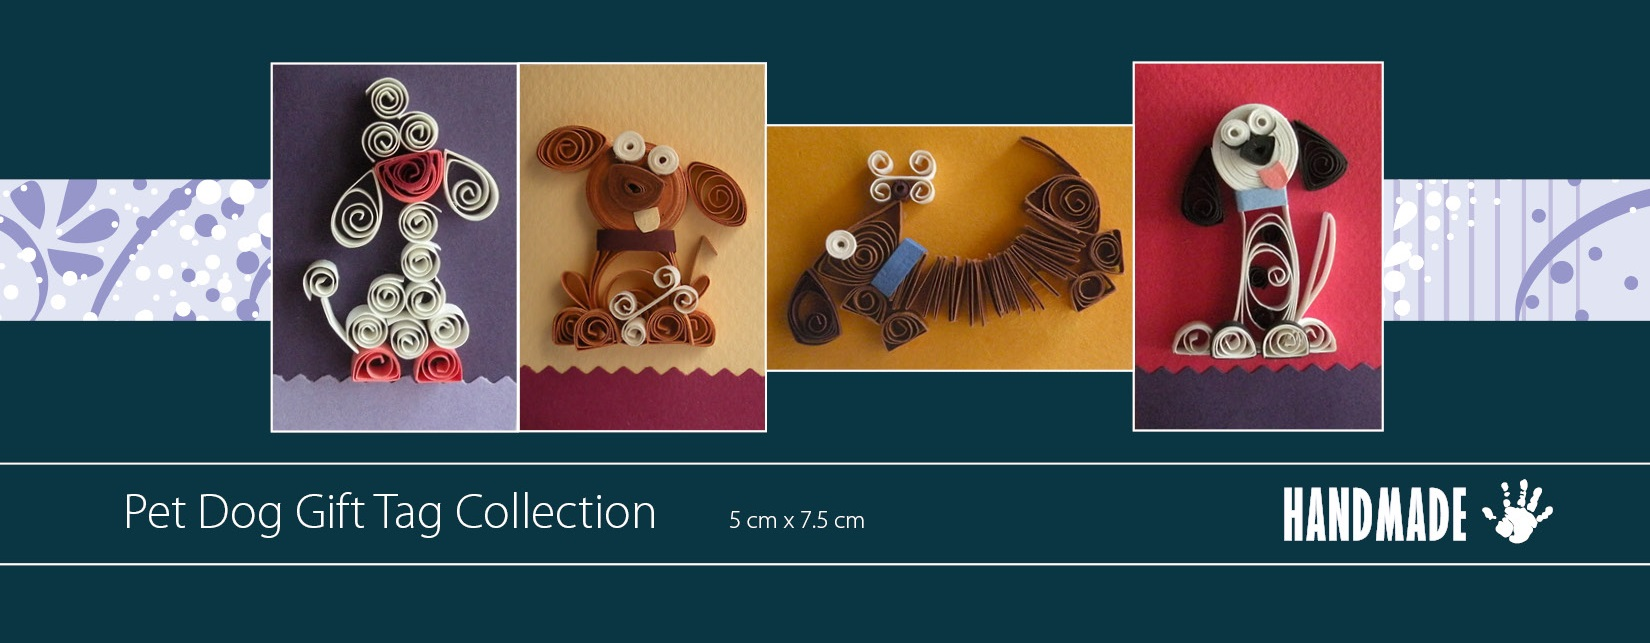 Quilling Pet Dog Handmade